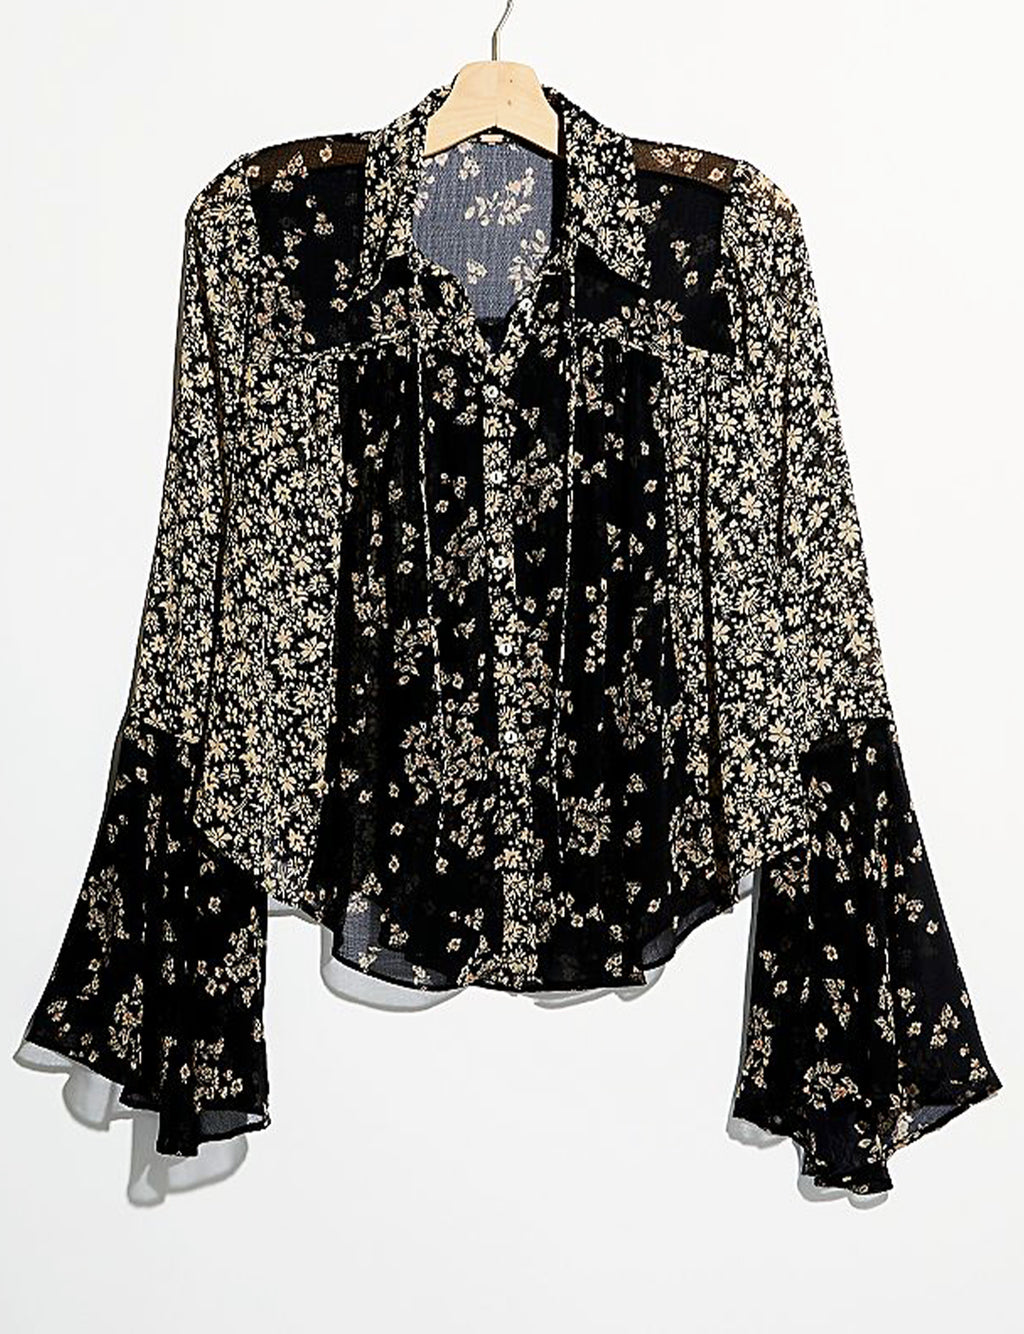 Free People Serena Printed Blouse in Black